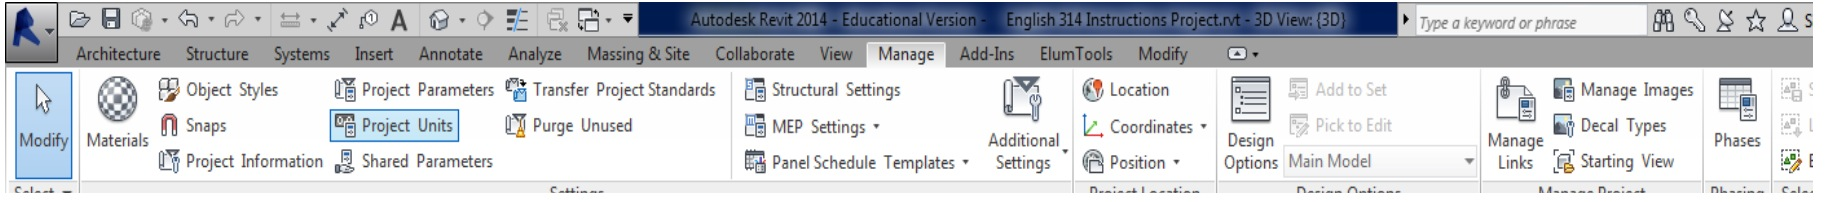 Picture of Adding a New Family of Objects to Revit